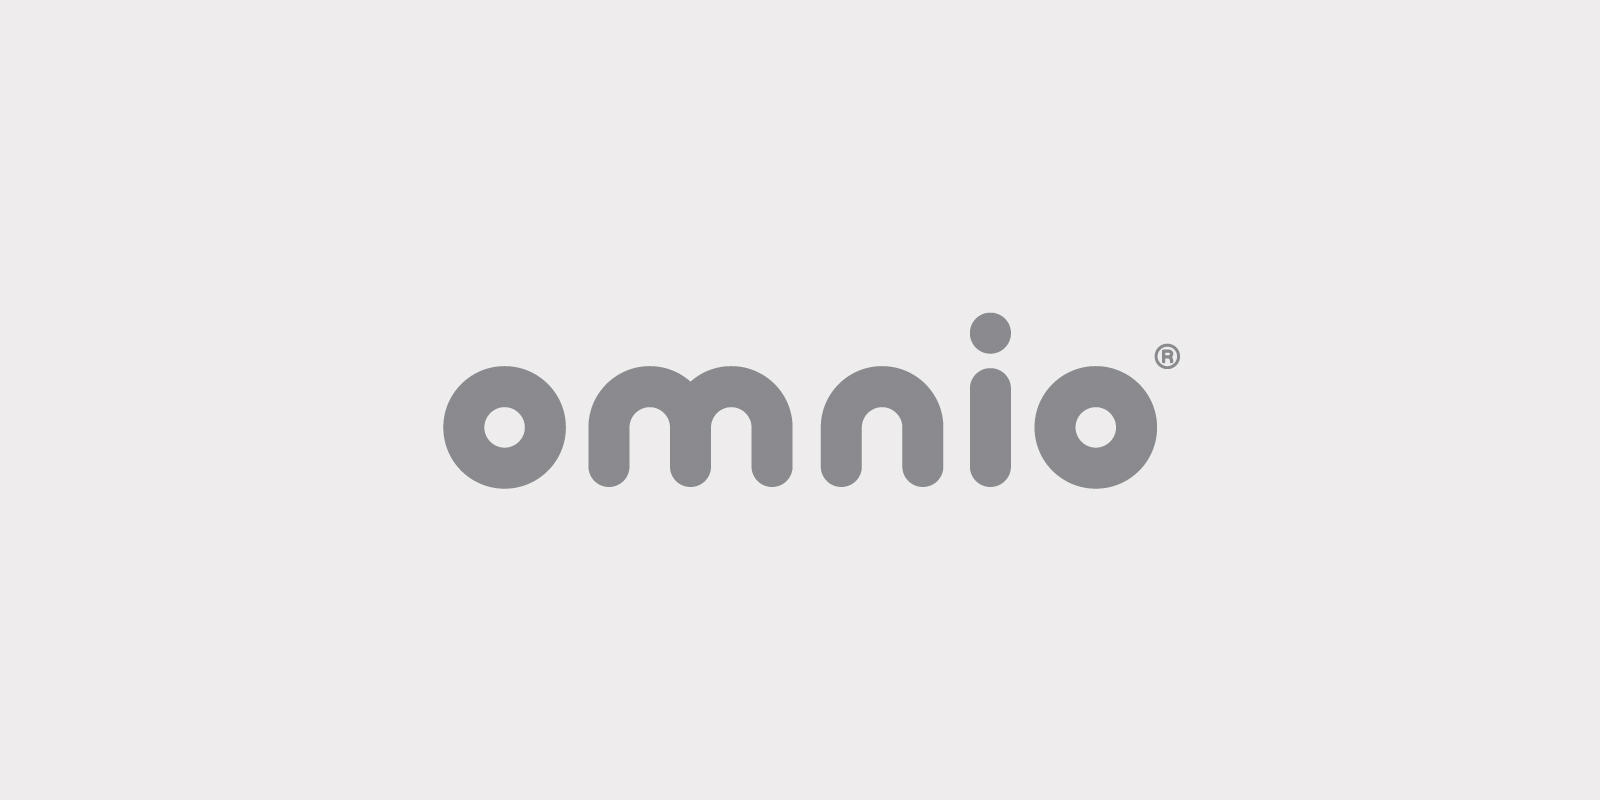 BTL_Website_Logos_Omnio_Grey.jpg